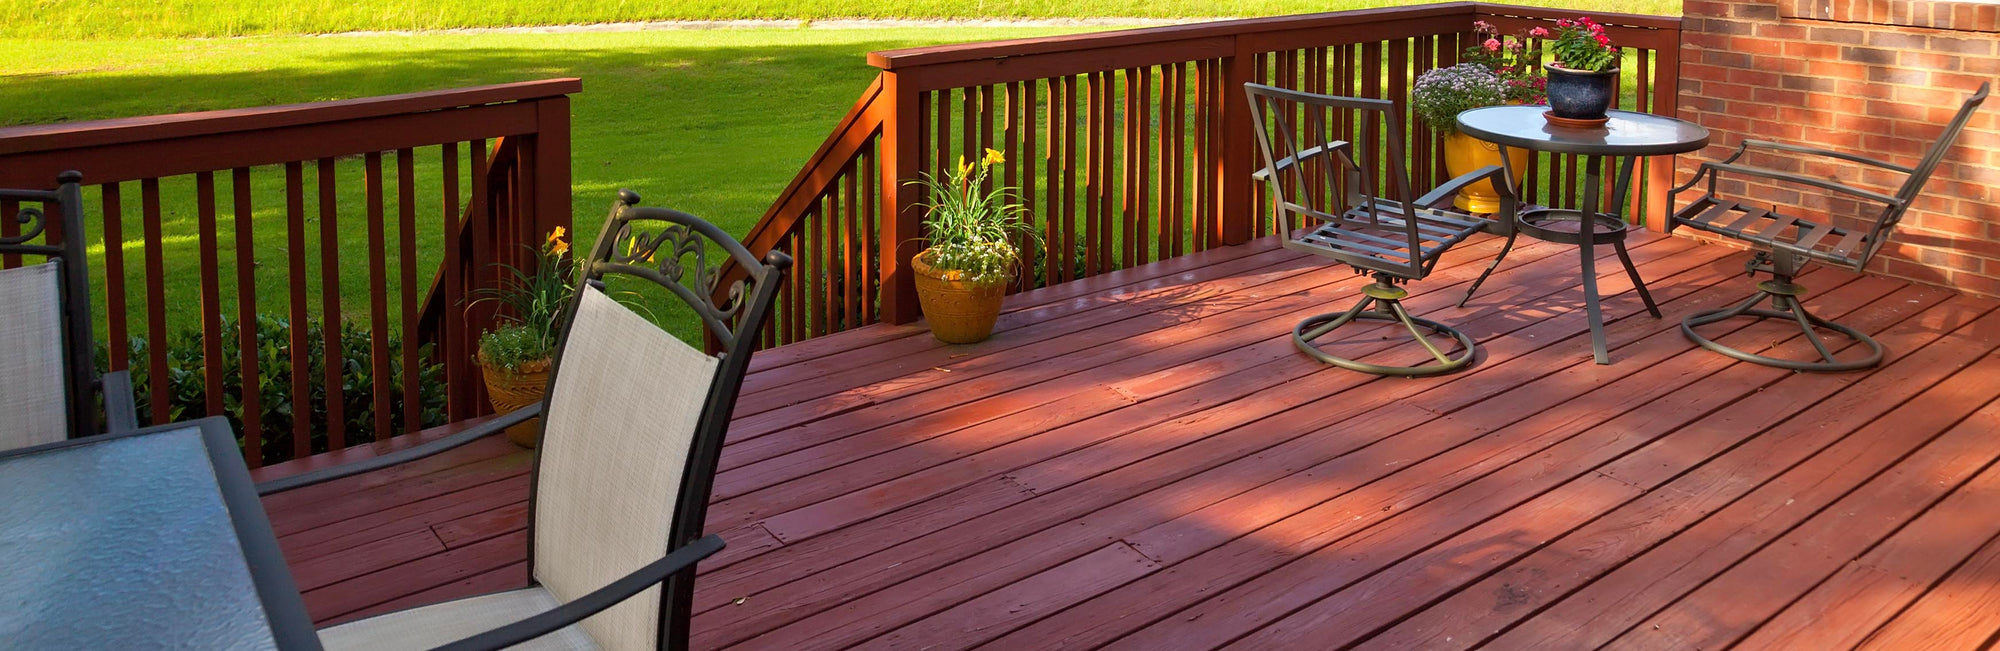 How to Choose the Right Deck Stain